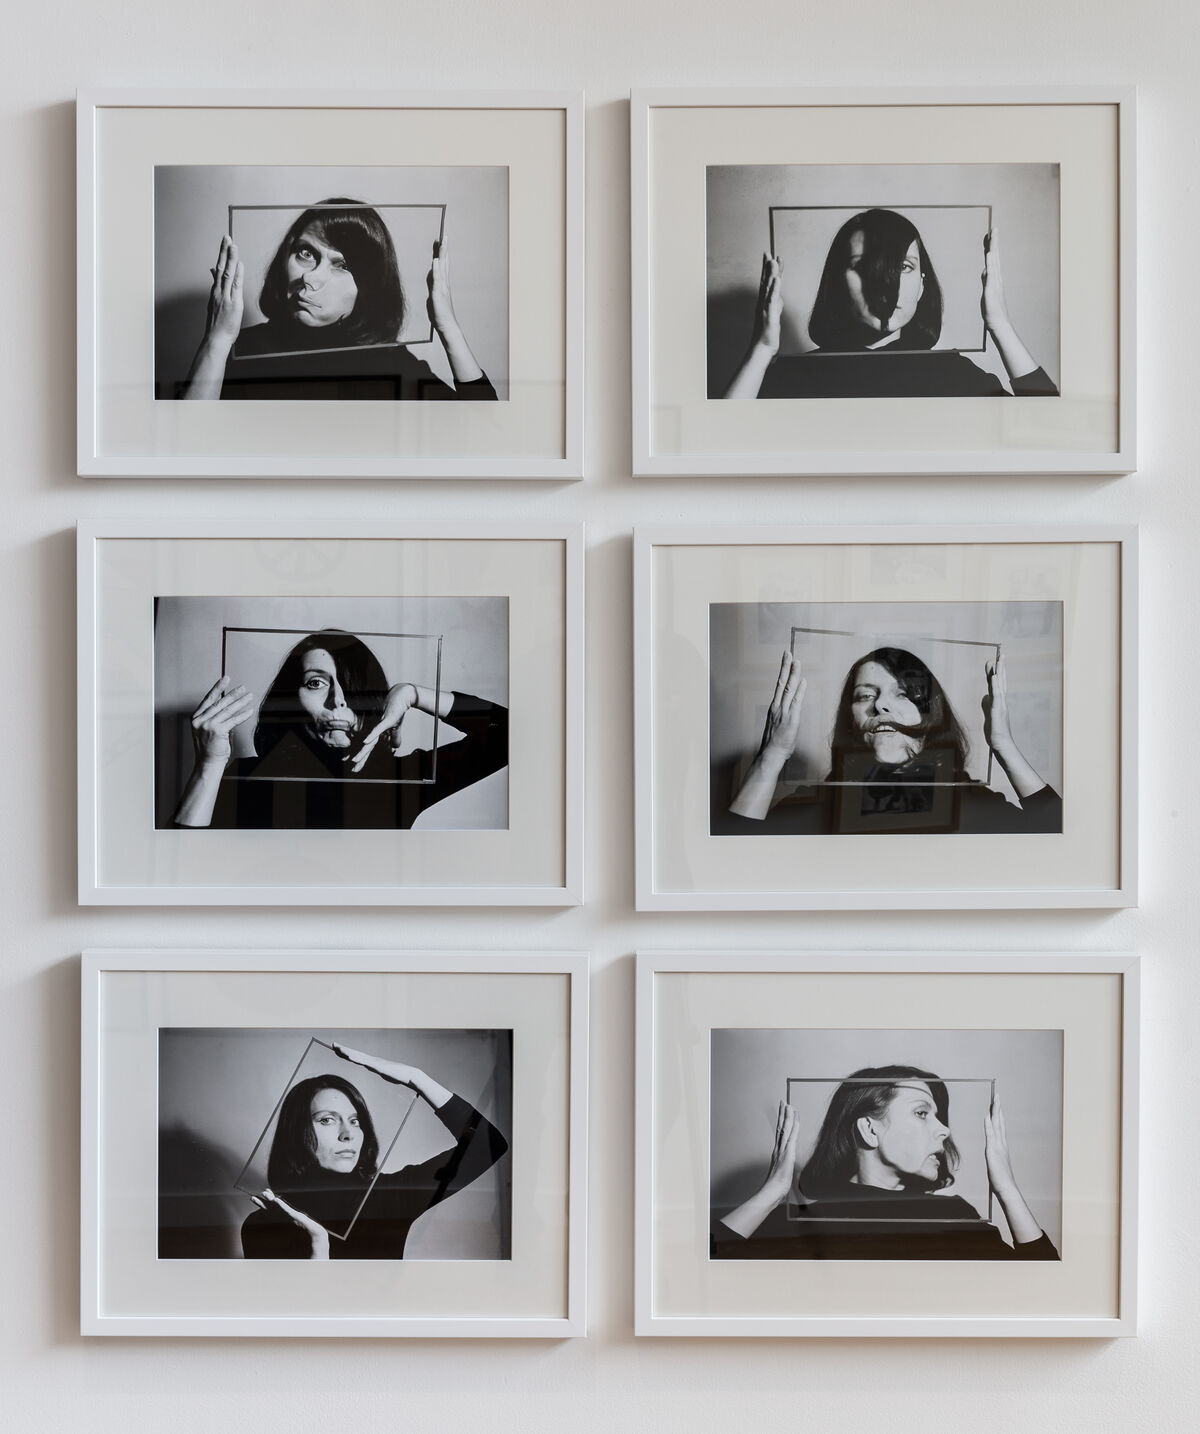 Katalin Ladik, Poemin, 1978/2016. Photo by Etienne Frossard. Courtesy of the artist, Elizabeth Dee New York and acb Gallery Budapest.